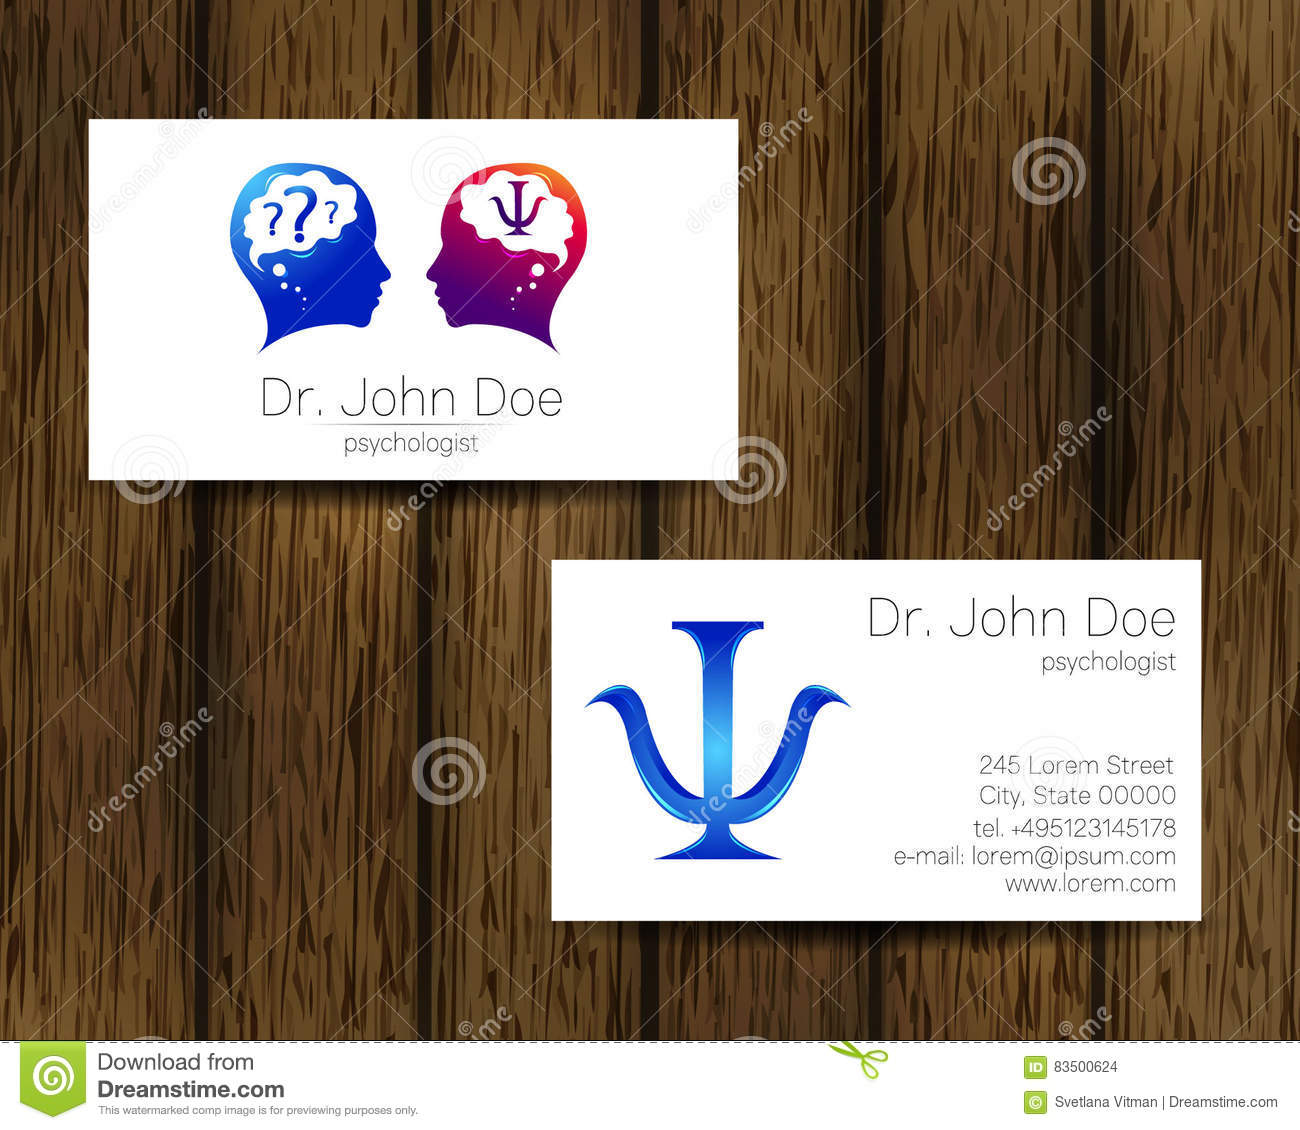 Download Carte De Visite Vecteur Psychologie Logo Moderne Type Crateur Concept Construction Illustration